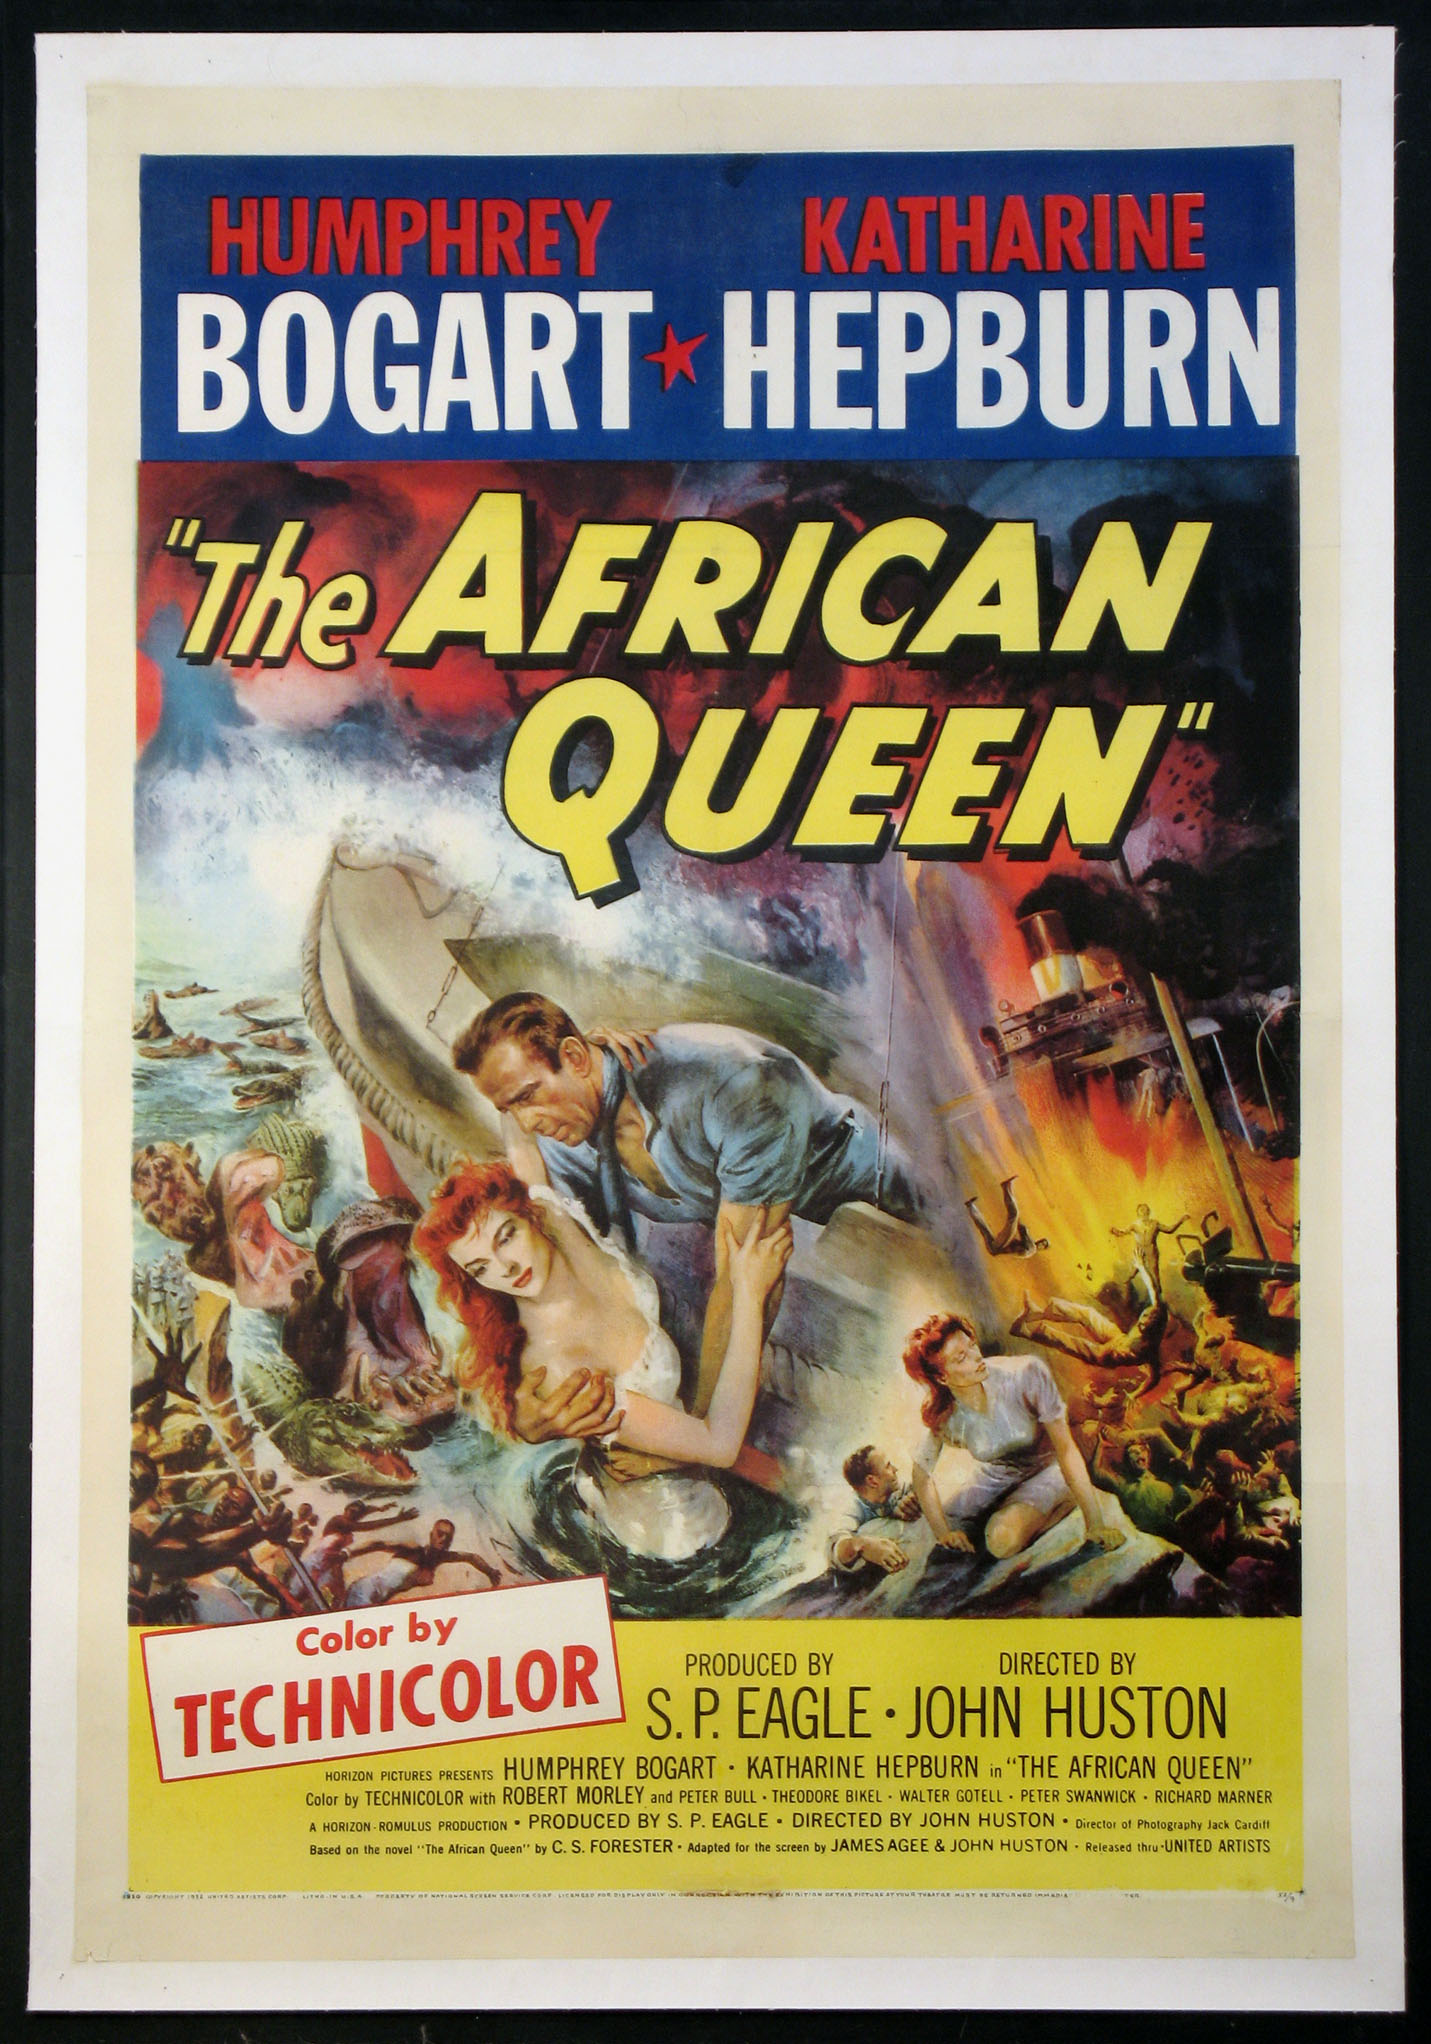 AFRICAN QUEEN, THE @ FilmPosters.com